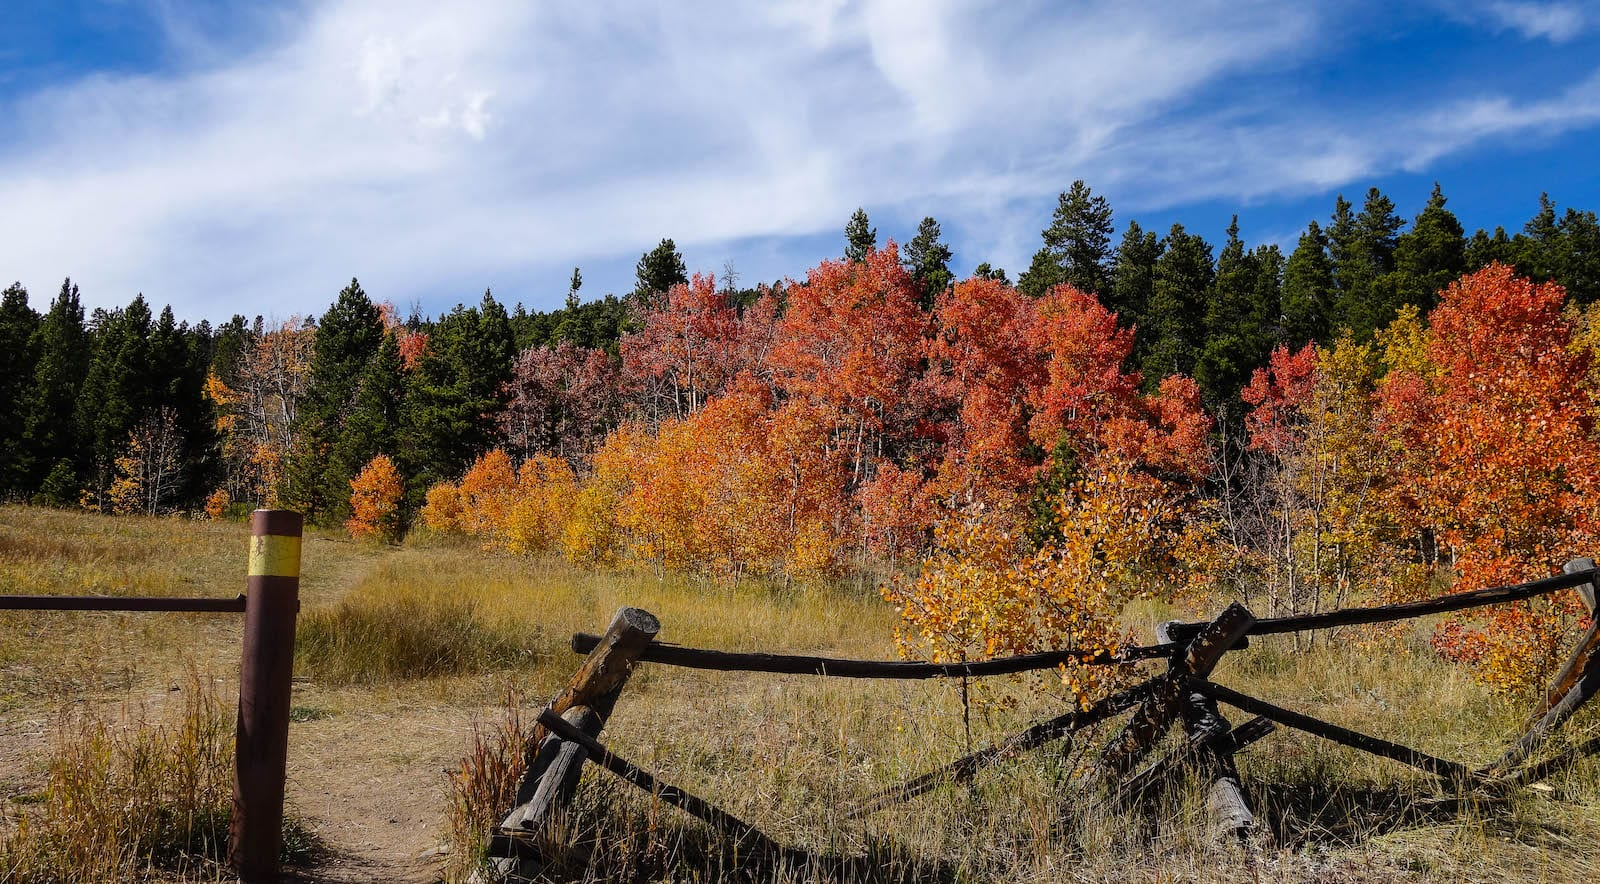 Falling fence in fall colors at Nederland Colorado